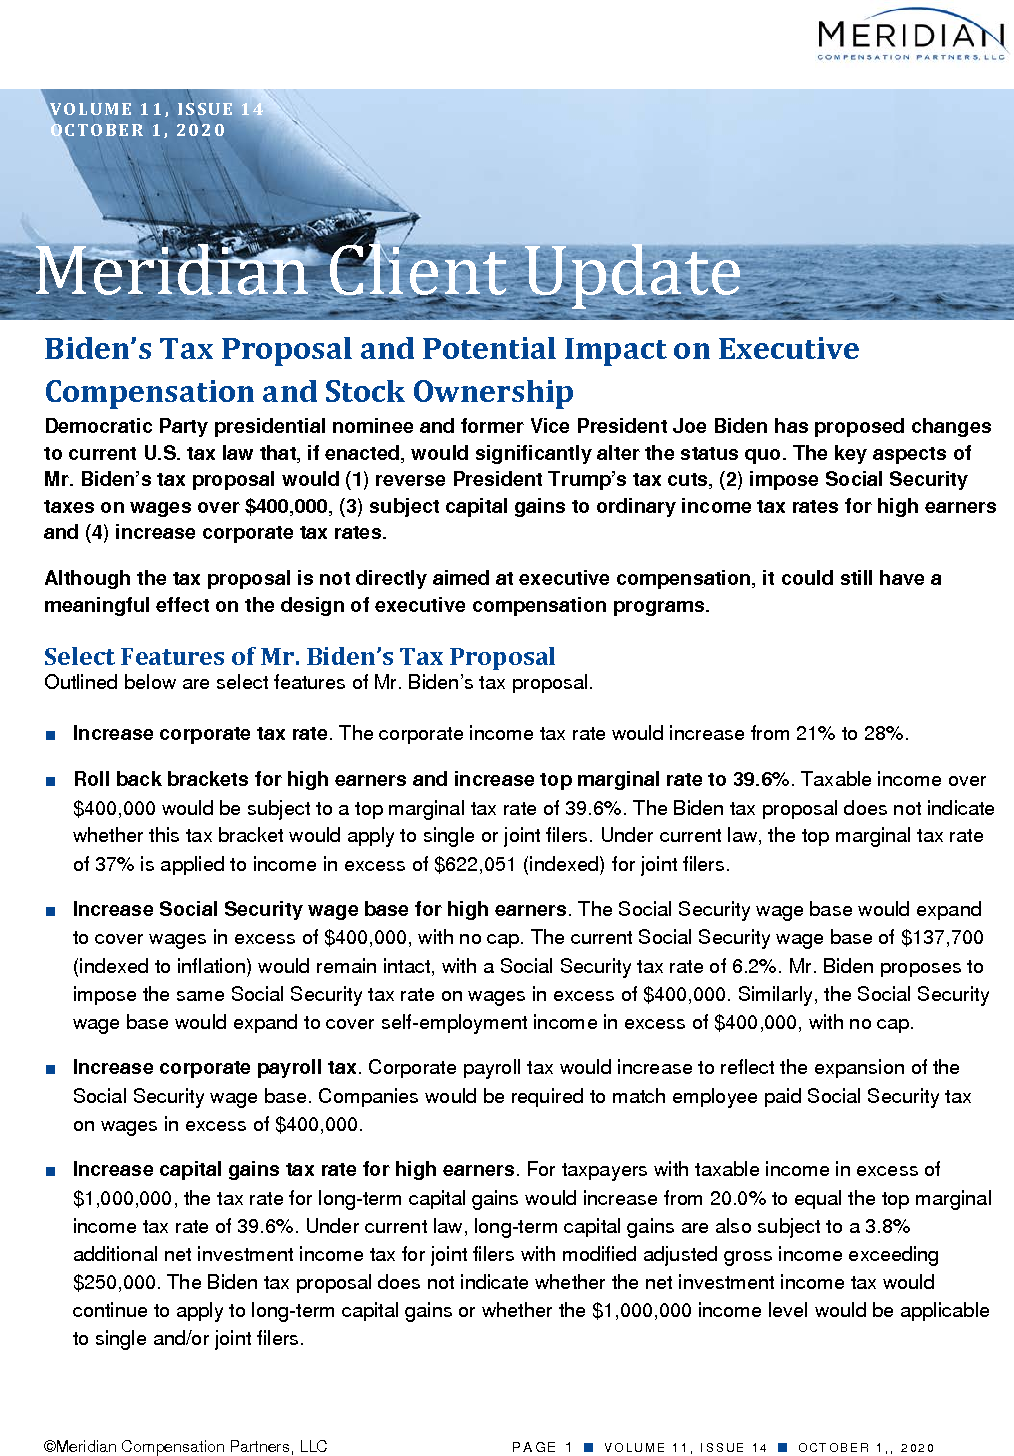 Biden's Tax Proposal and Potential Impact on Executive Compensation and Stock Ownership (PDF)